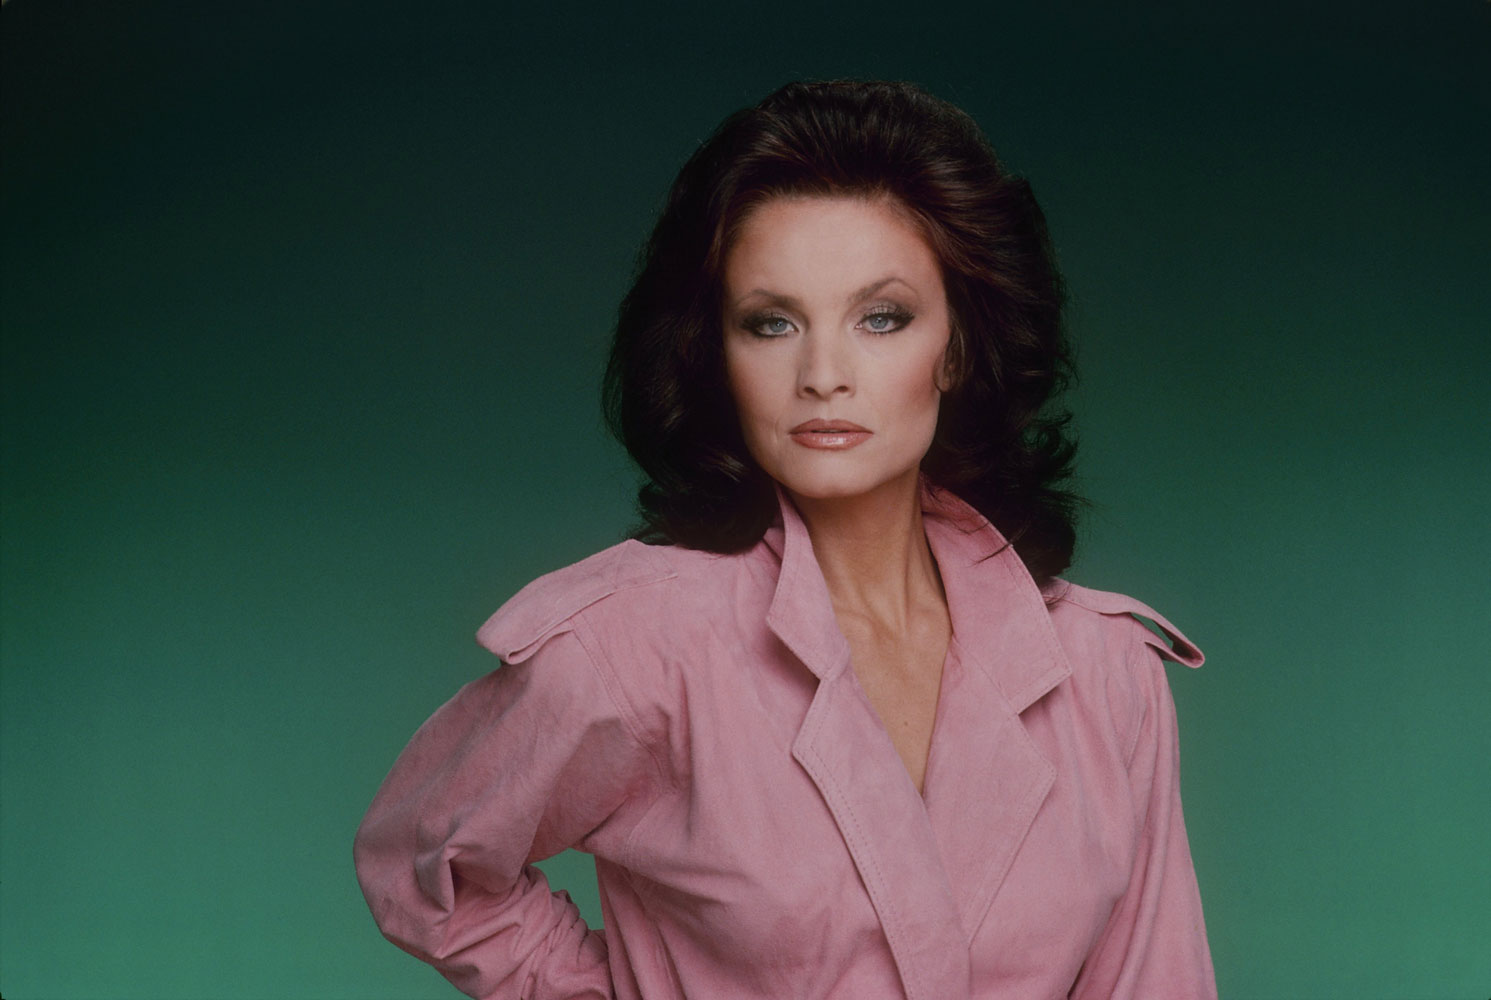 Kate O'Mara, in a publicity photo for Dynasty, January 15, 1986.